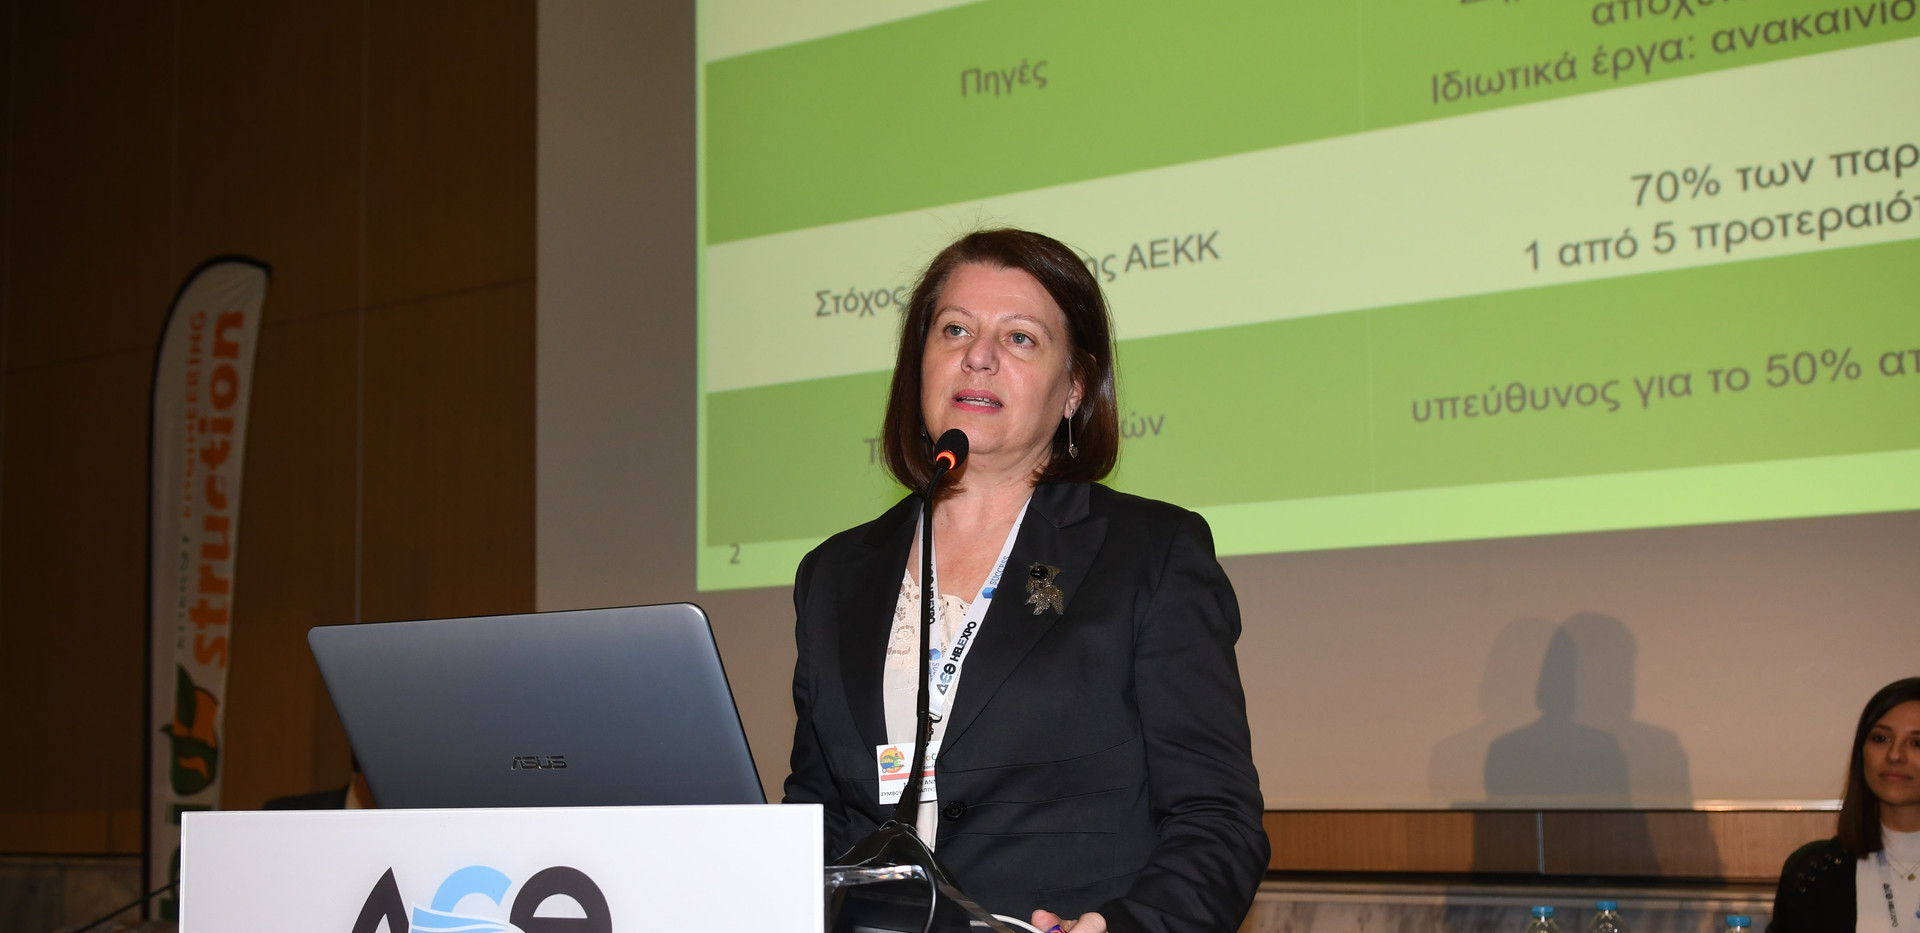 Anna Michou, Development Consultant of ANAKEM S.A.